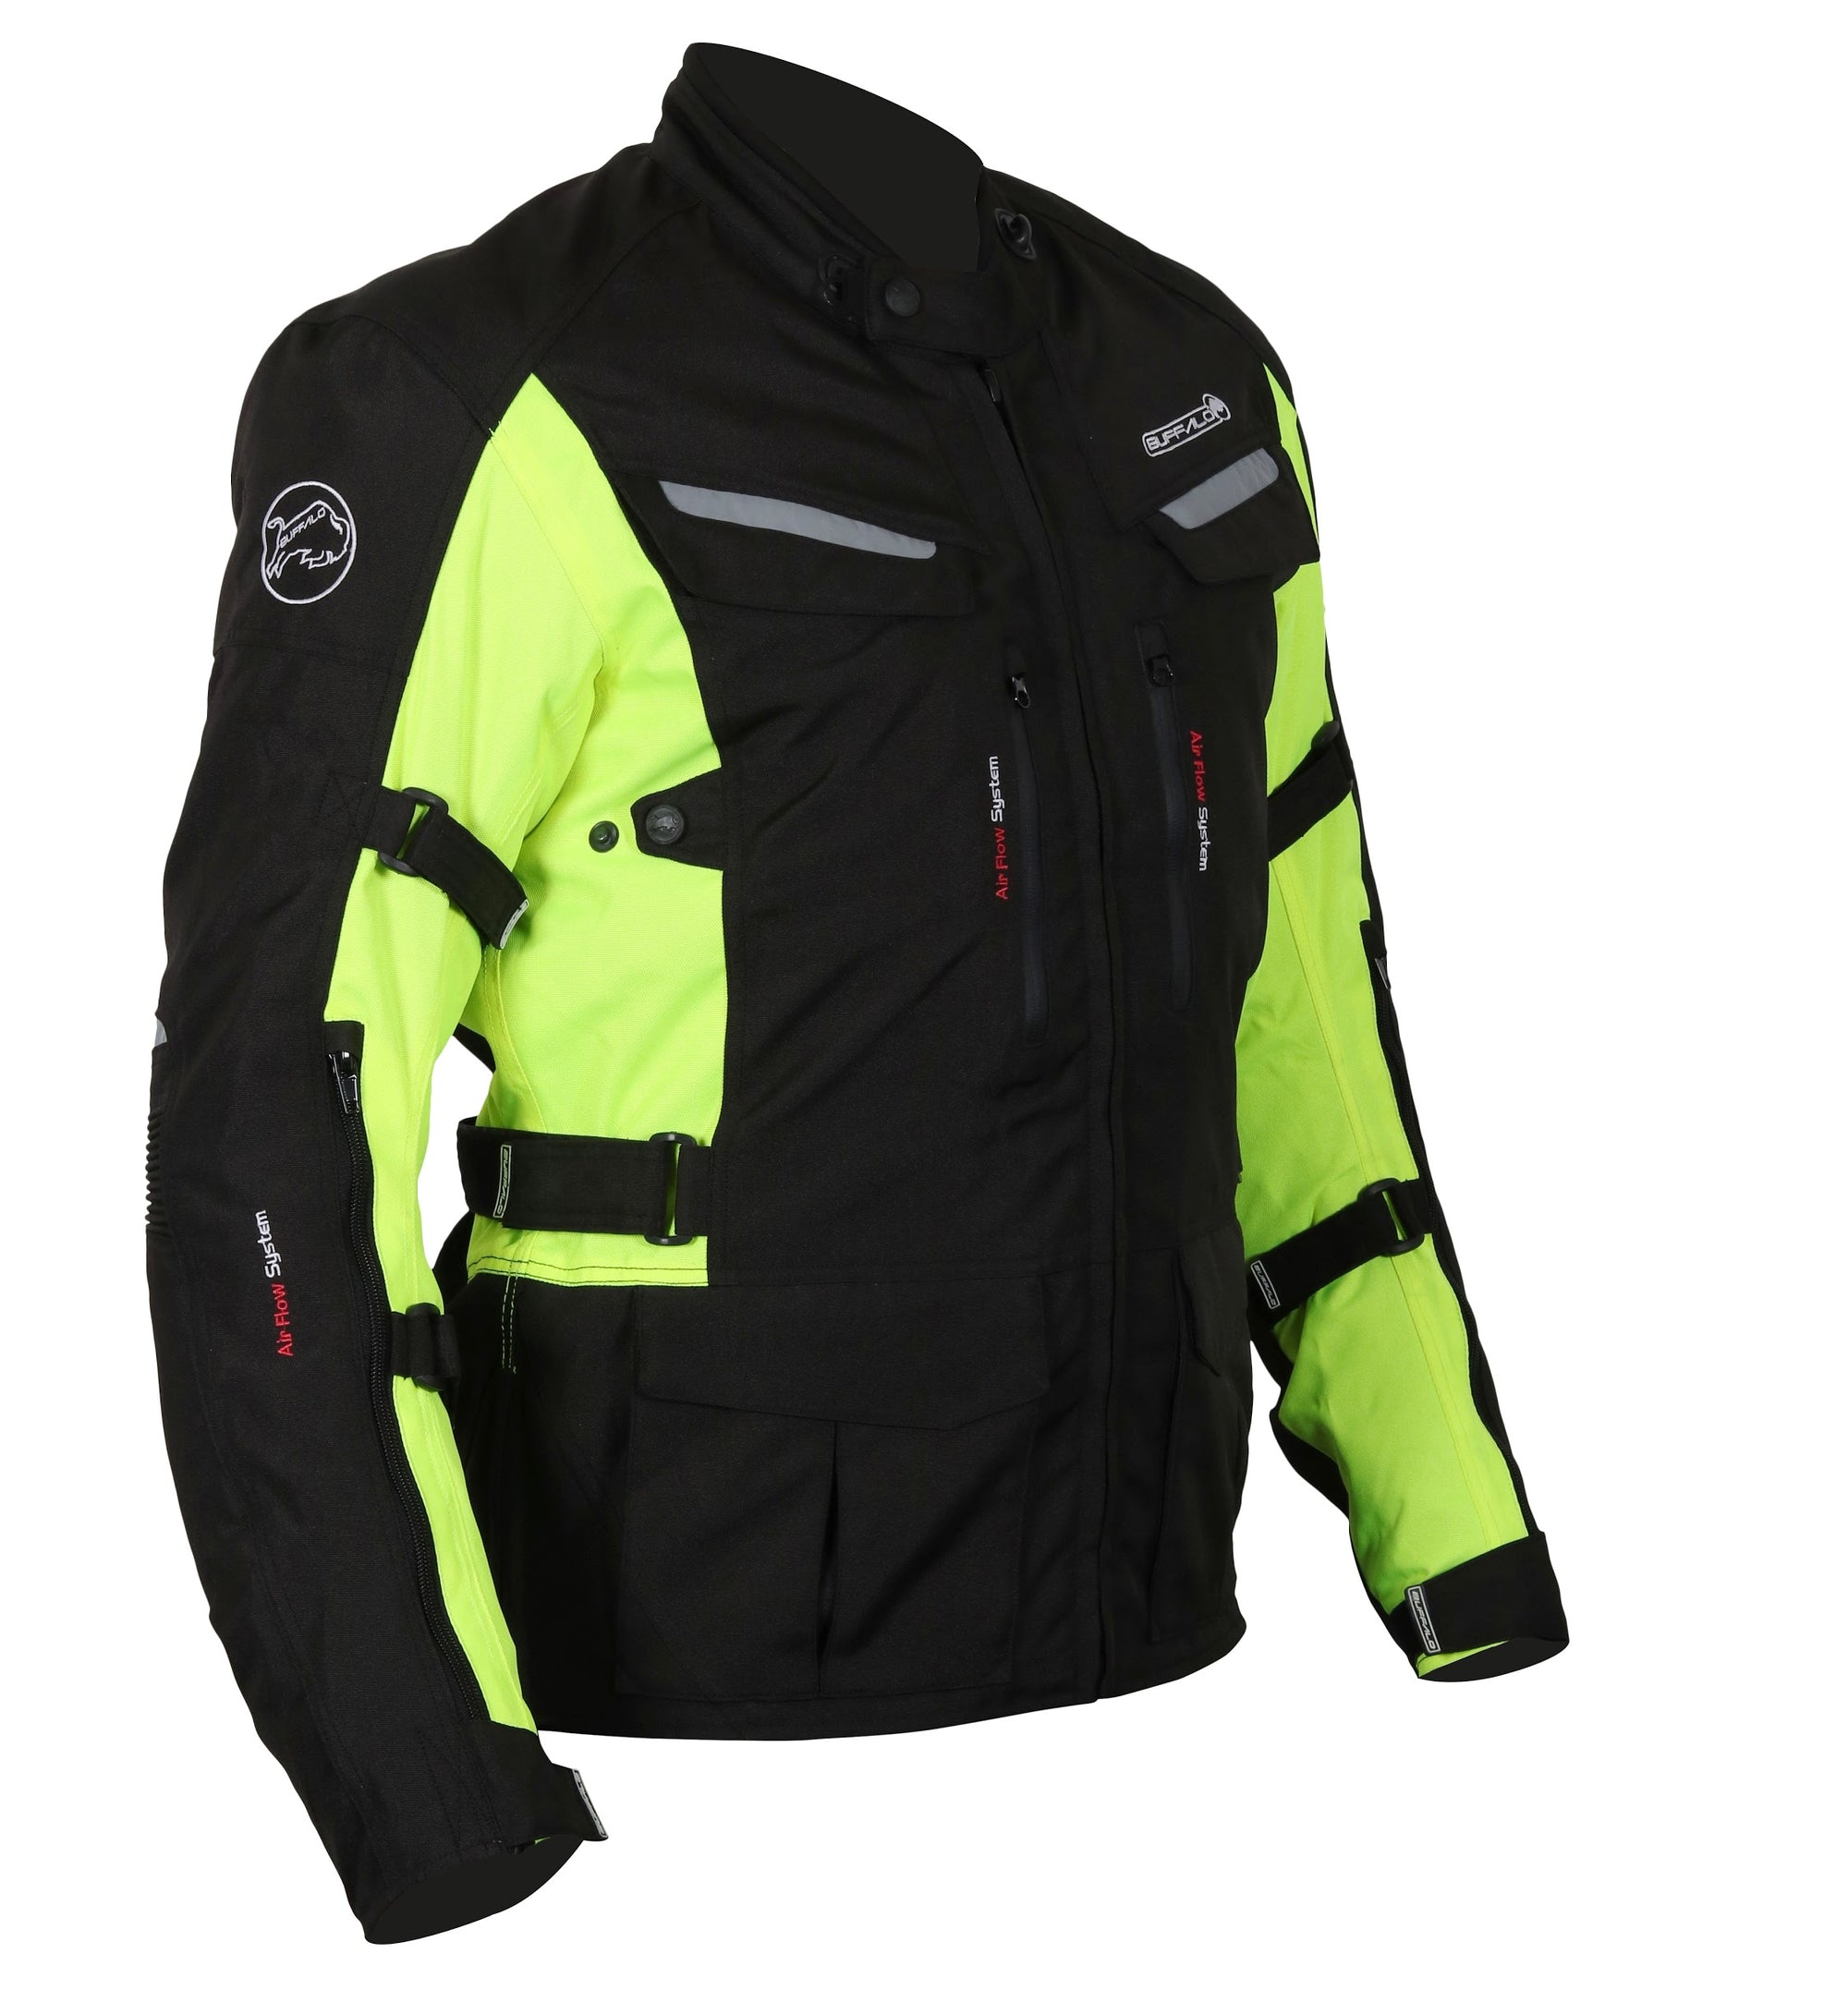 Buffalo Jacket - Vortex, Jacket, Buffalo - Averys Motorcycles